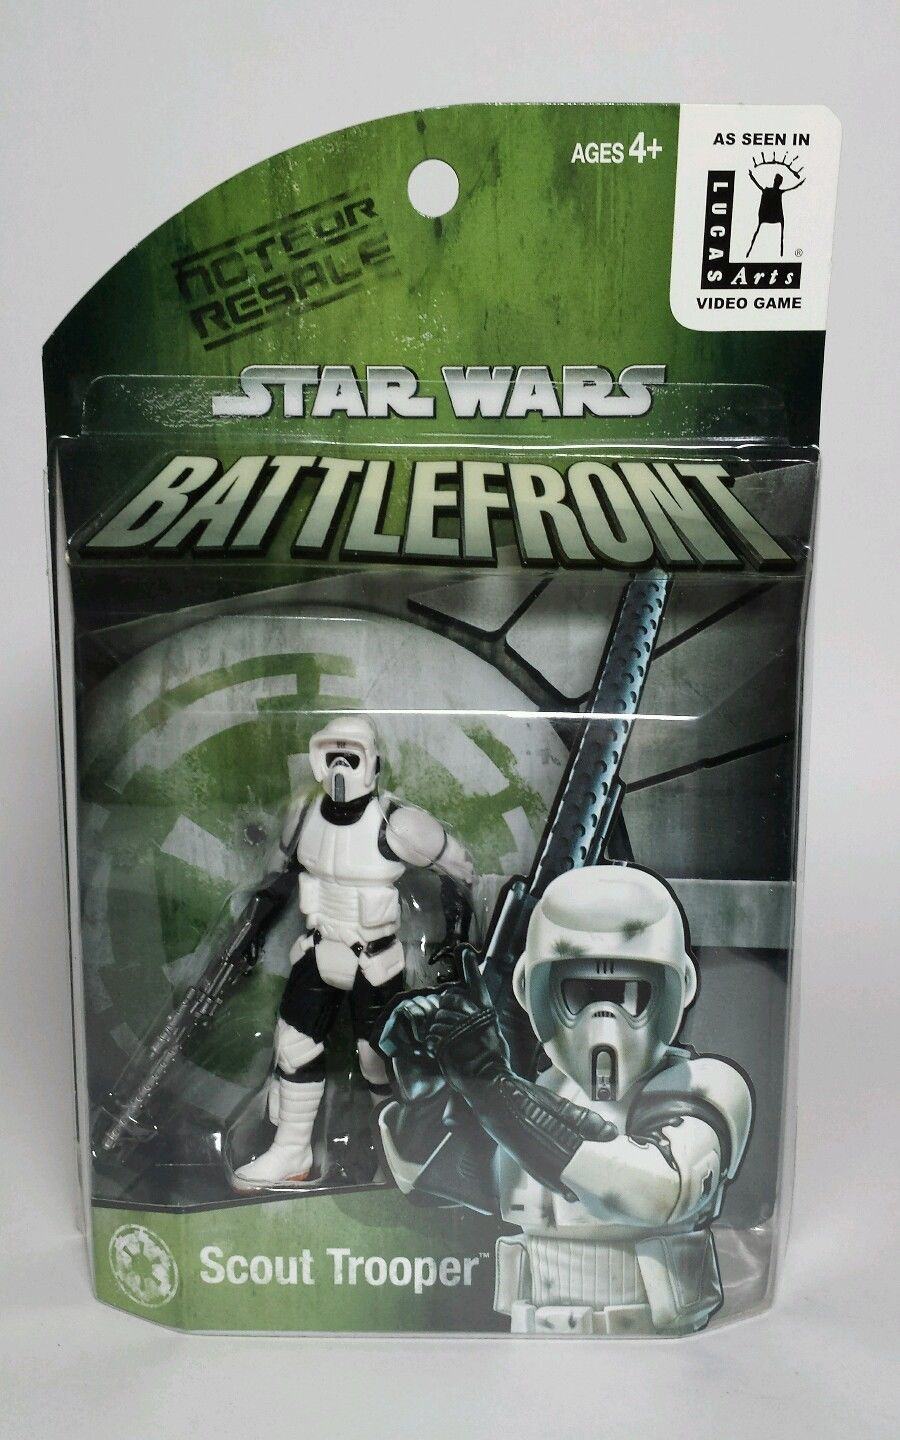 Star Wars Toy Game : Star wars battlefront game exclusive scout trooper